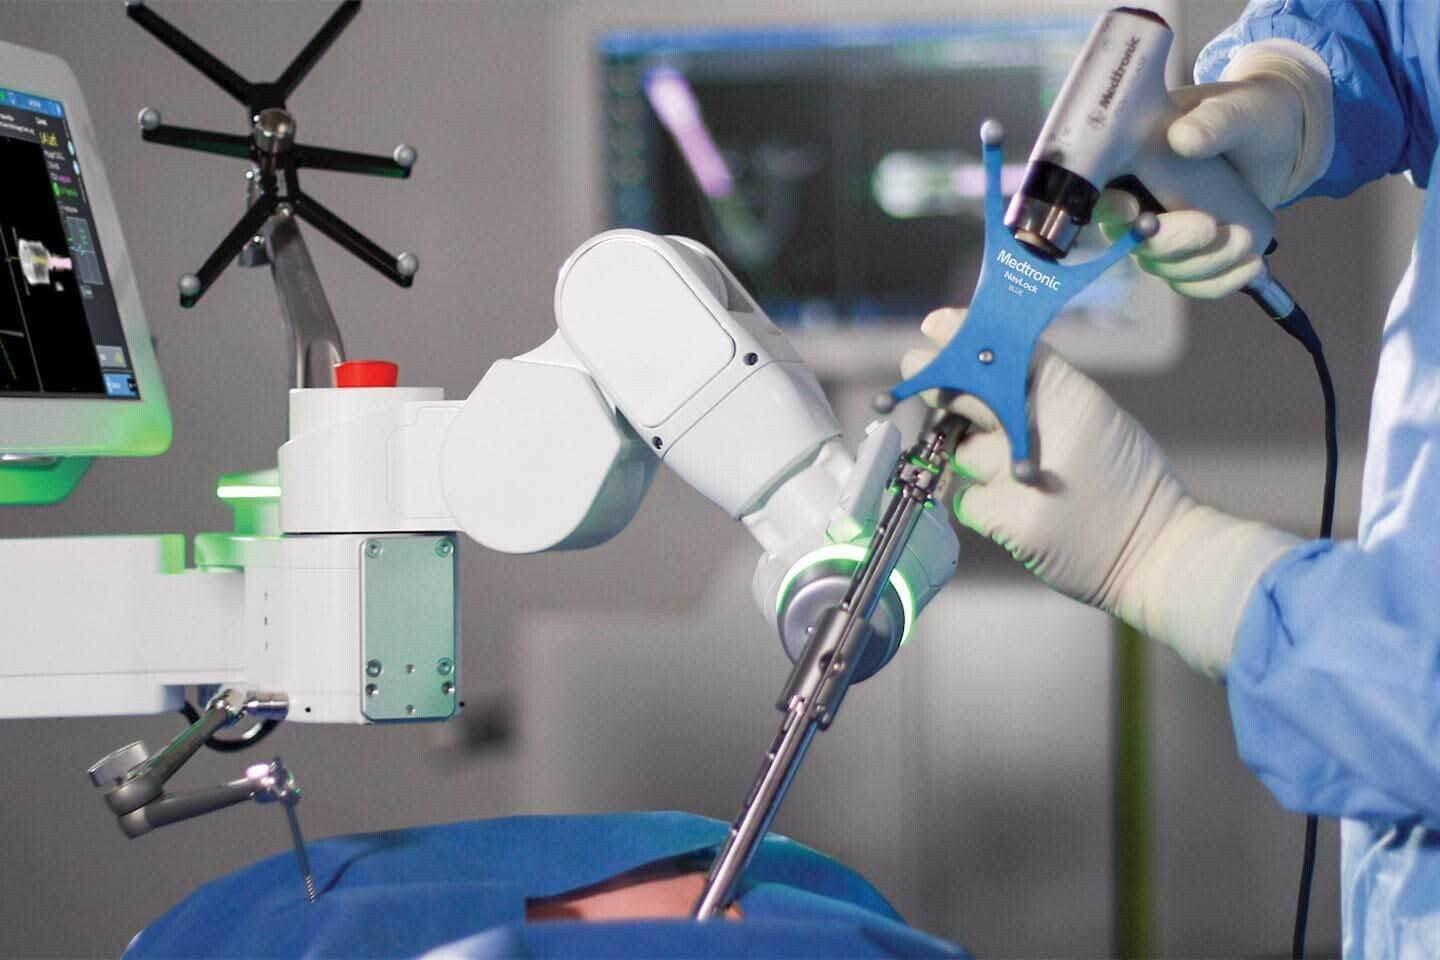 Spinal surgery equipment